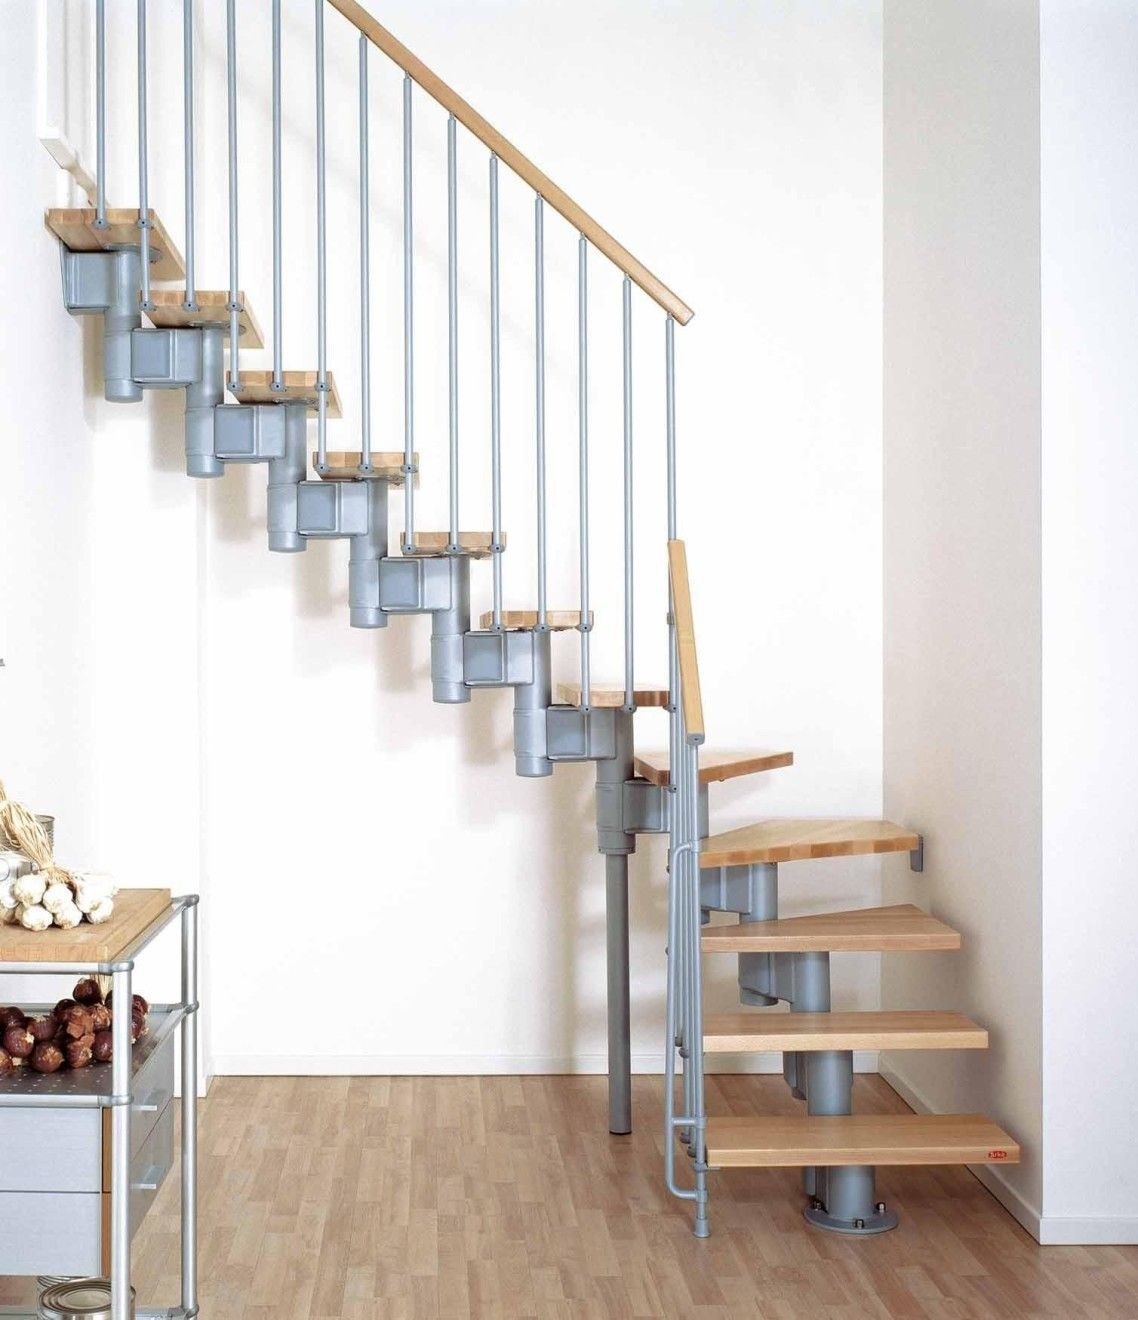 Pretty Design Ideas Of Small Space Floating Stairs With Wooden Treads And Handrails Also Silver Color Metal Ba Modular Staircase Staircase Design Stairs Design